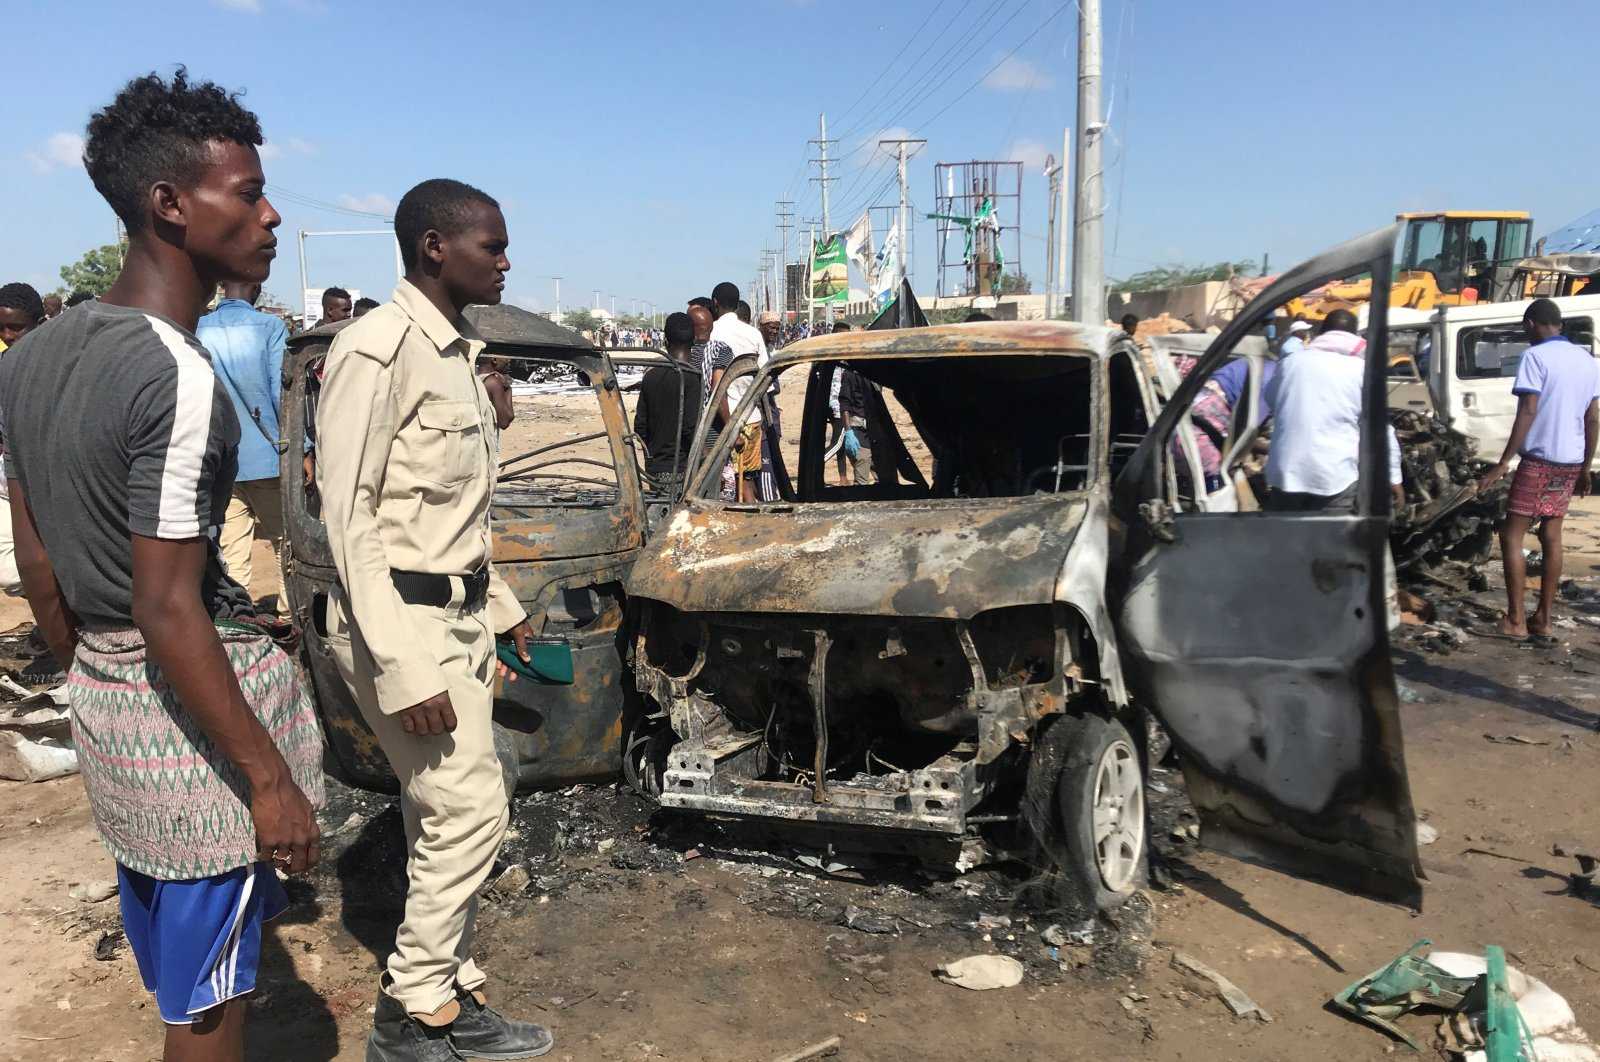 Somali security assess the scene of a car bomb explosion at a checkpoint, Mogadishu, Dec. 28, 2019. (REUTERS Photo)